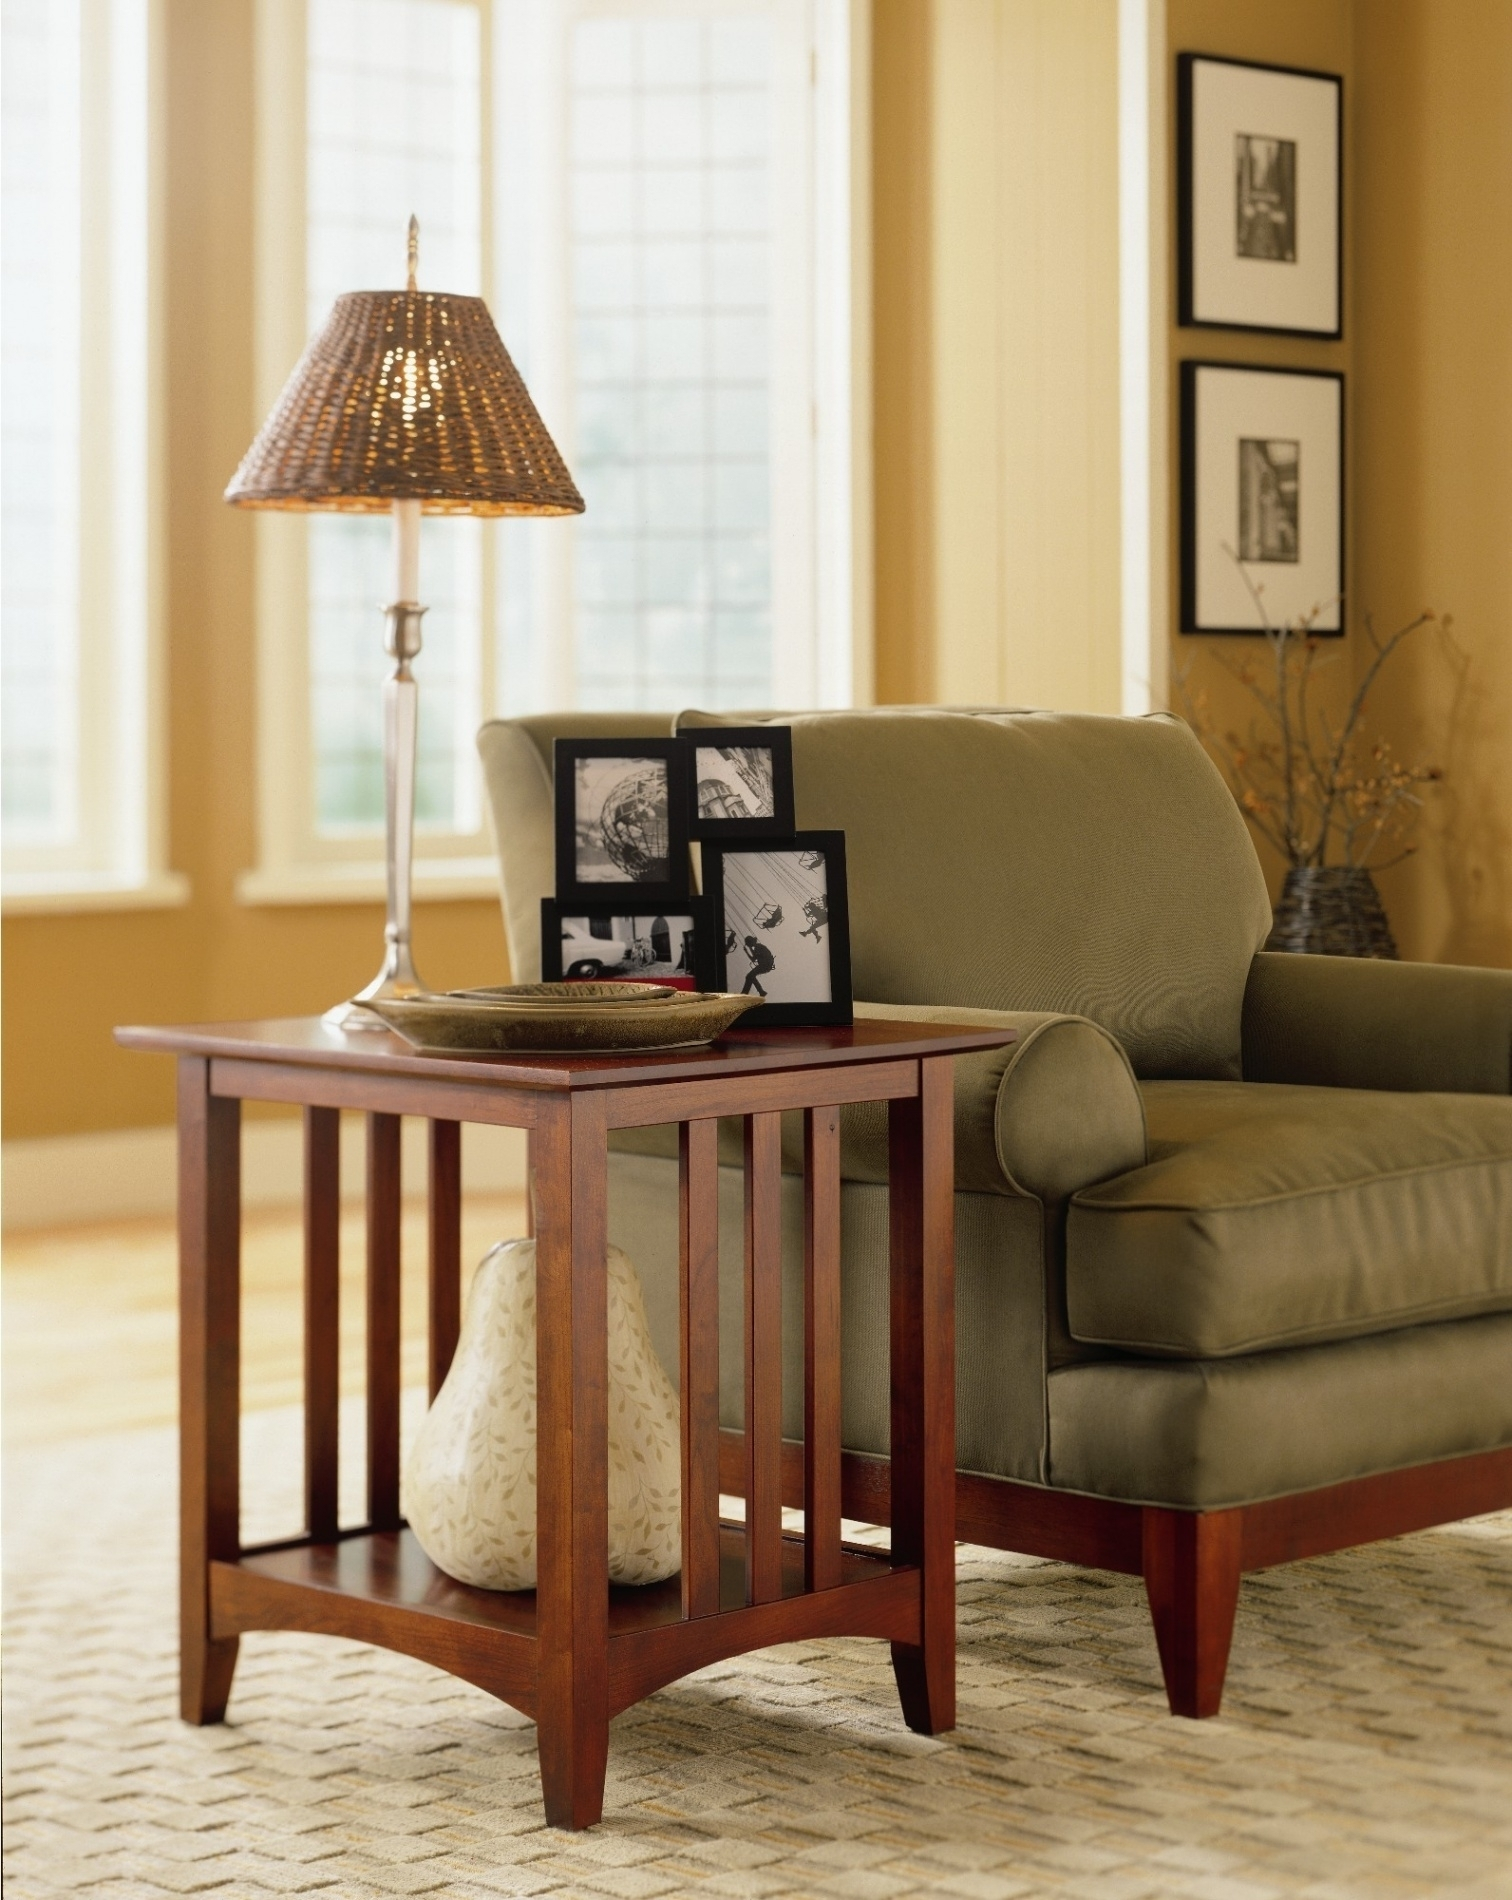 Preferred End Table Lamps For Living Room Home Combo, Living Room End Table Within Living Room End Table Lamps (View 4 of 20)